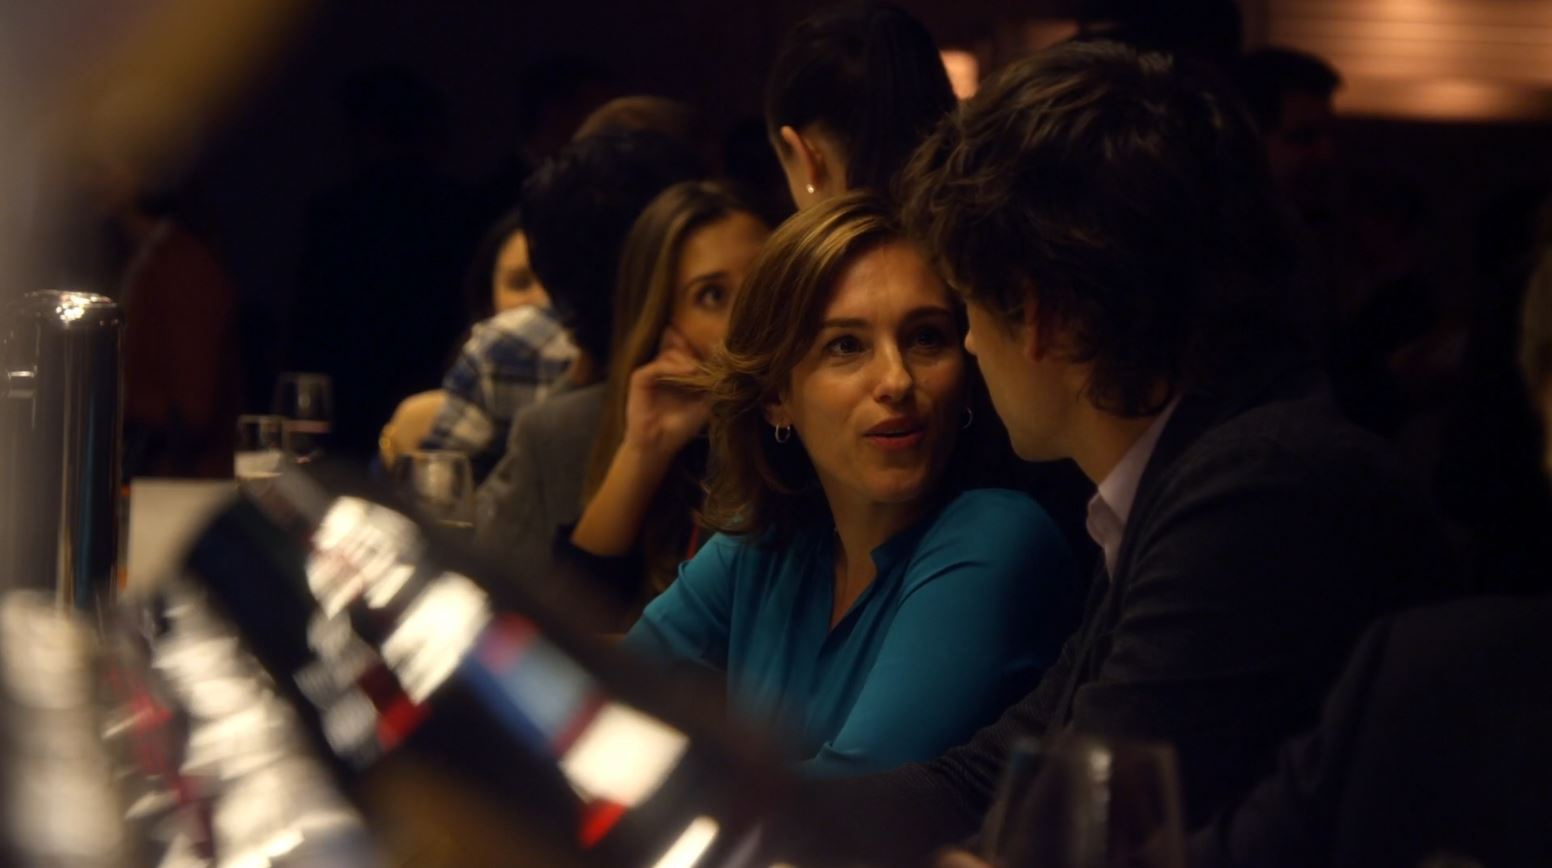 Covert Affairs S5Ep2 False Skorpion Review - Amy Jo Johnson as Hayley Price